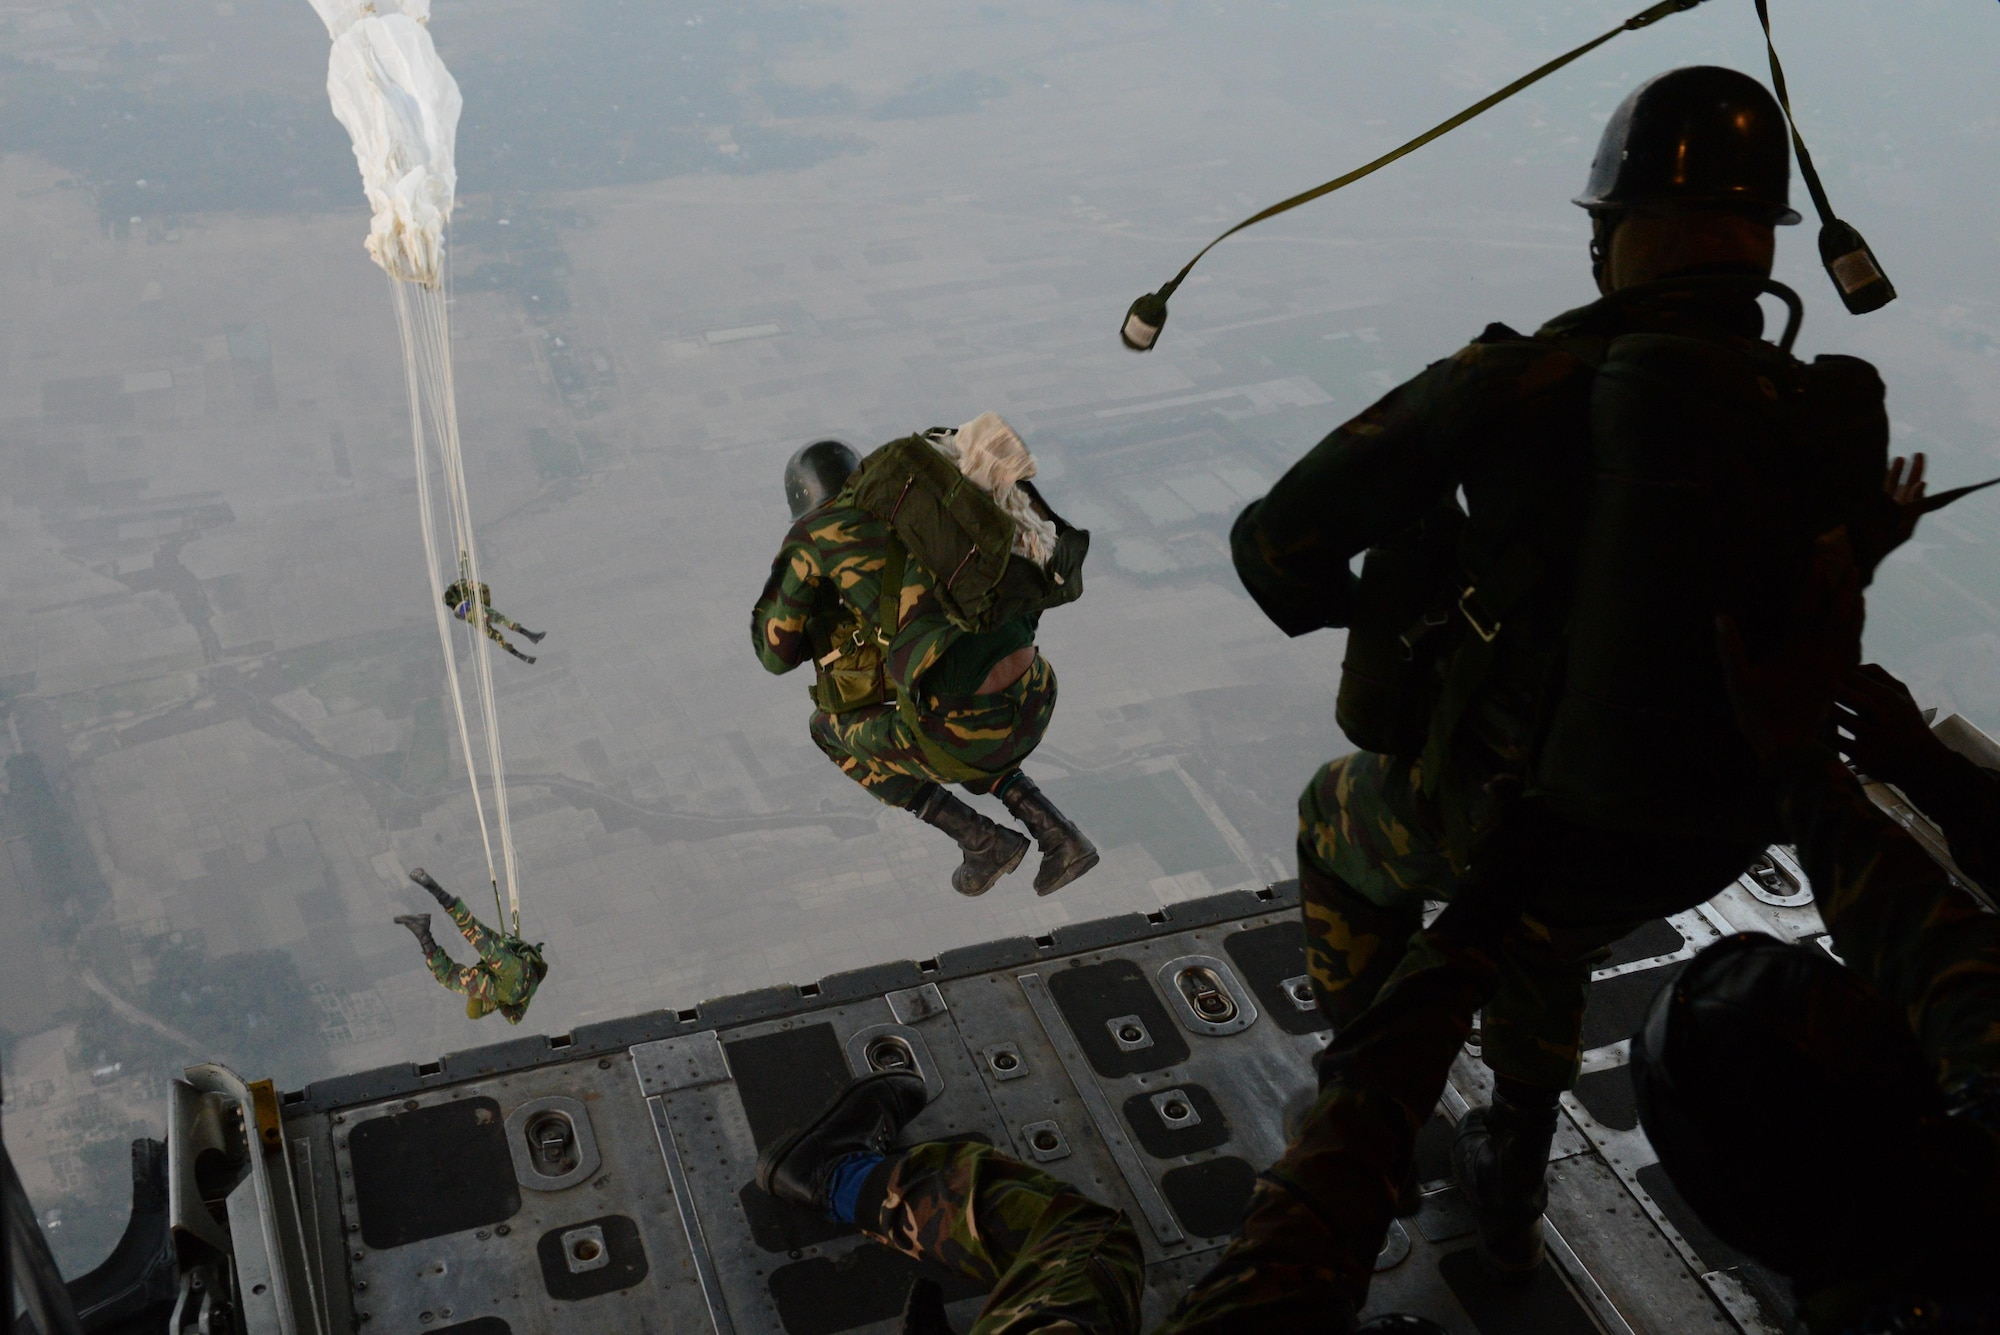 Bangladeshi commandos jump from a U.S. Air Force C-130H aircraft over a drop zone Jan. 24, 2015 during exercise Cope South near Sylhet, Bangladesh. The exercise is a Pacific Air Forces-sponsored, bilateral tactical airlift exercise conducted in Bangladesh, with a focus on cooperative flight operations, day and night low-level navigation, tactical airdrop, and air-land missions as well as subject-matter expert exchanges in the fields of operations, maintenance and rigging disciplines. (U.S. Air Force photo/1st Lt. Jake Bailey)